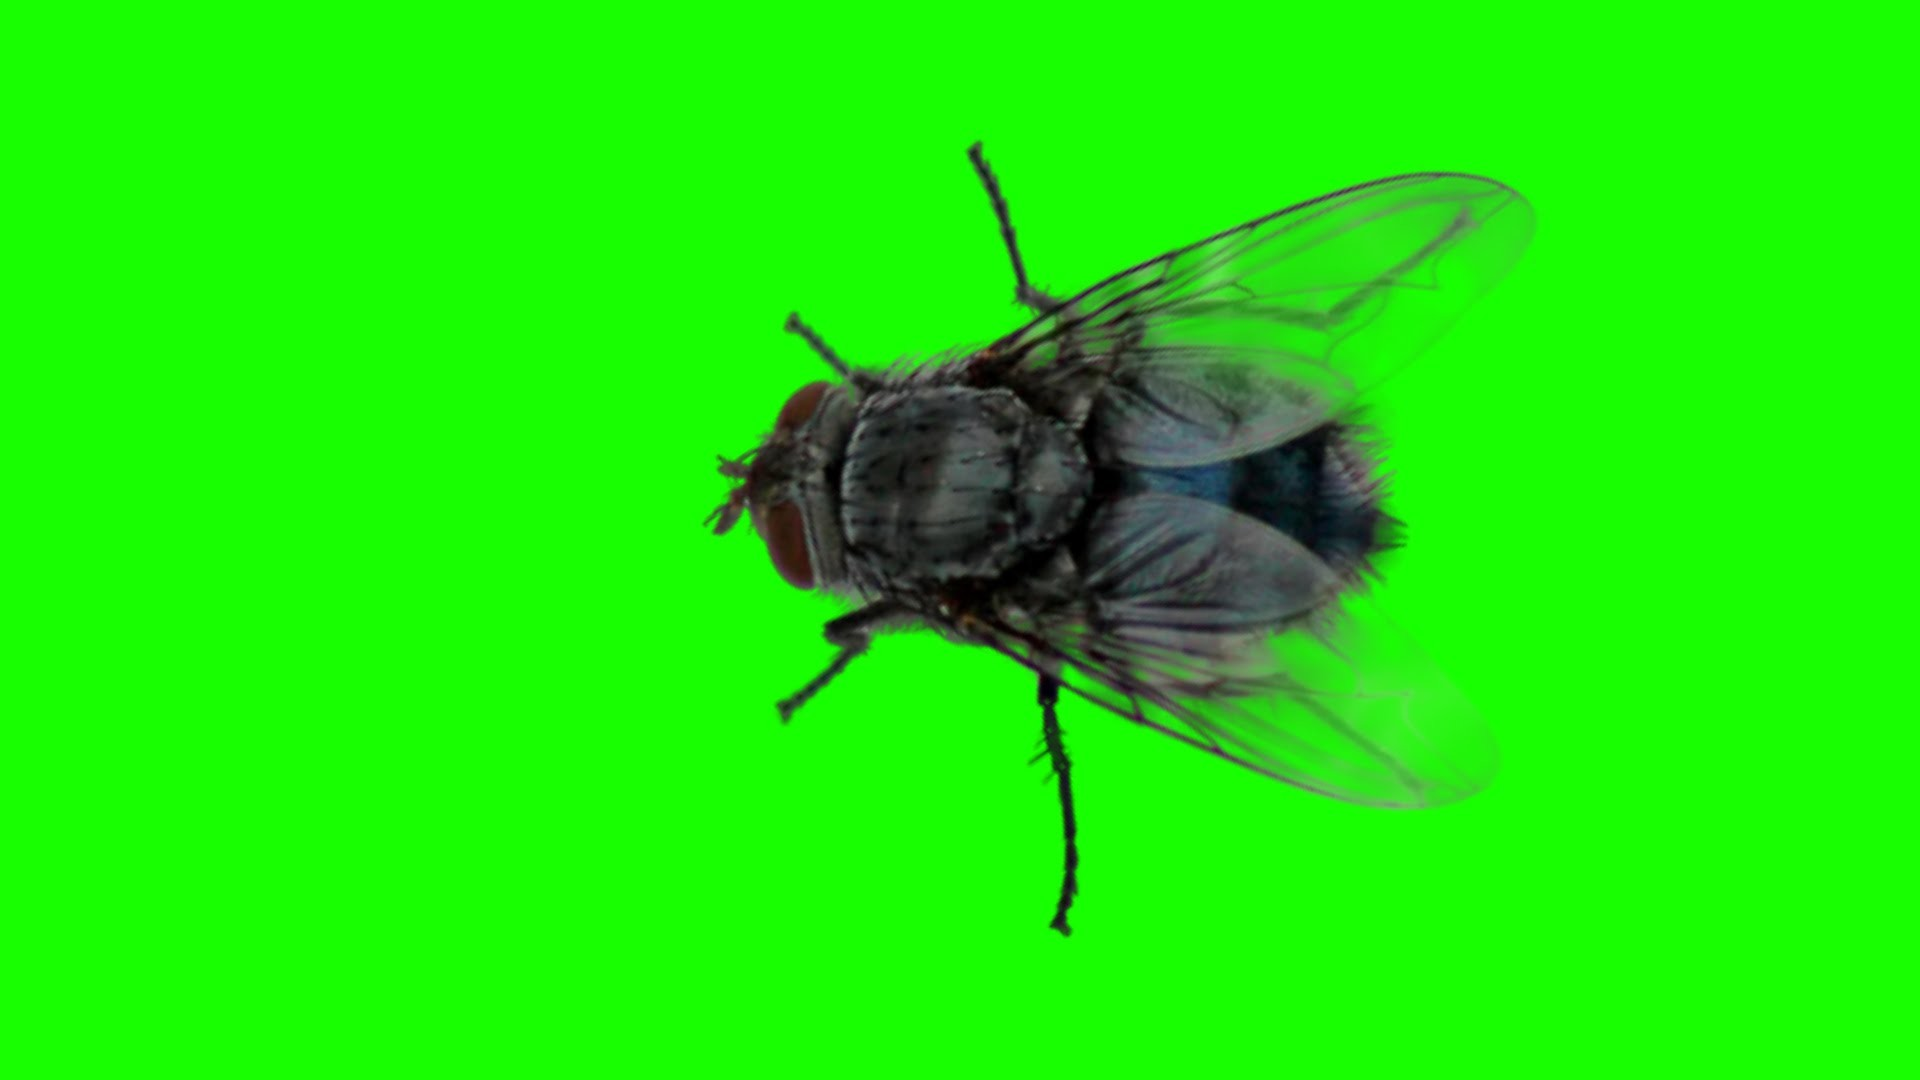 1920x1080 Disturbing panic real fly green screen free royalty footage